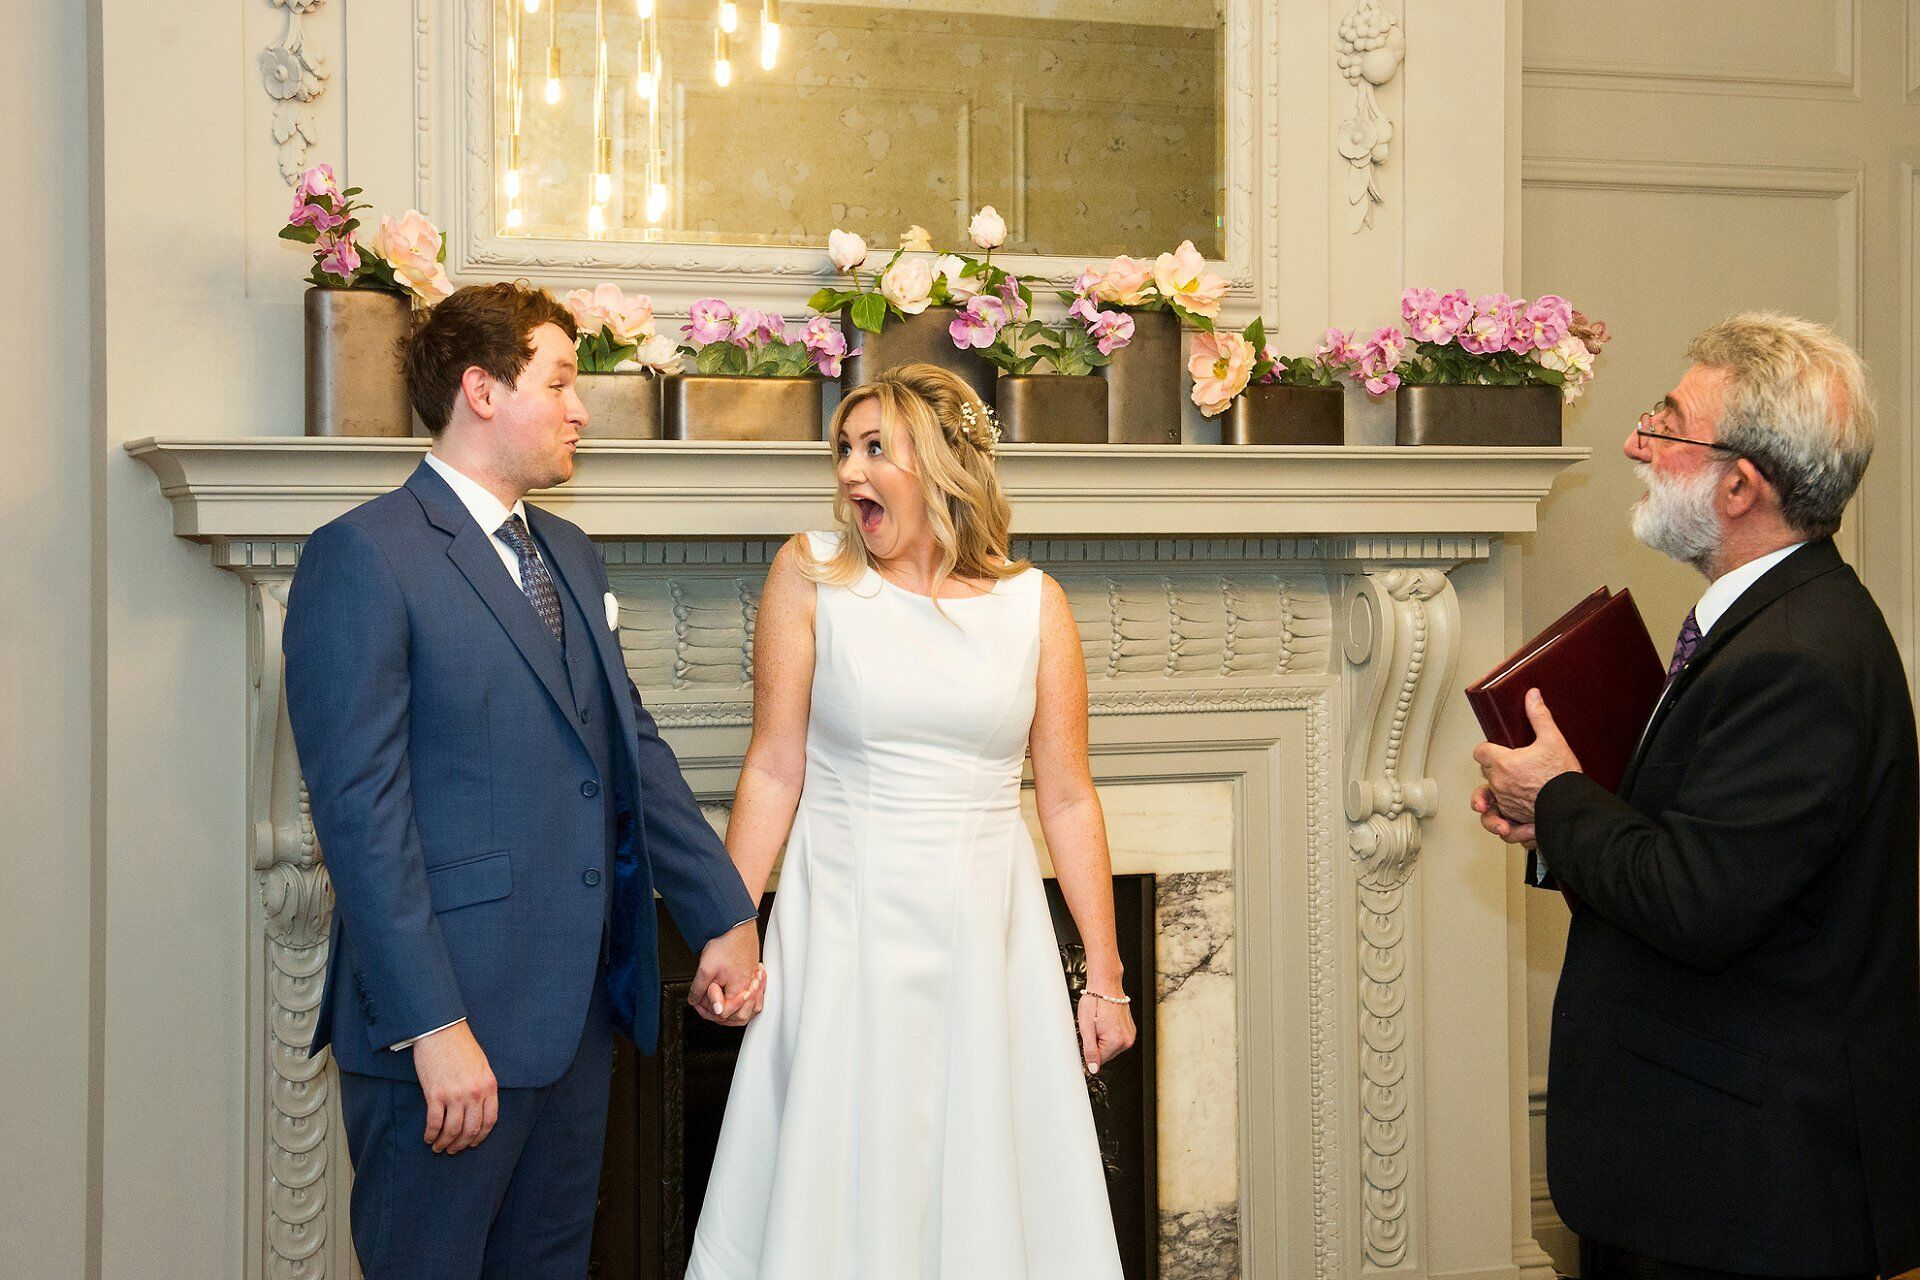 bride excited at being officially married at old marylebone town hall (soho room wedding photography) the main home of westminster register office weddings